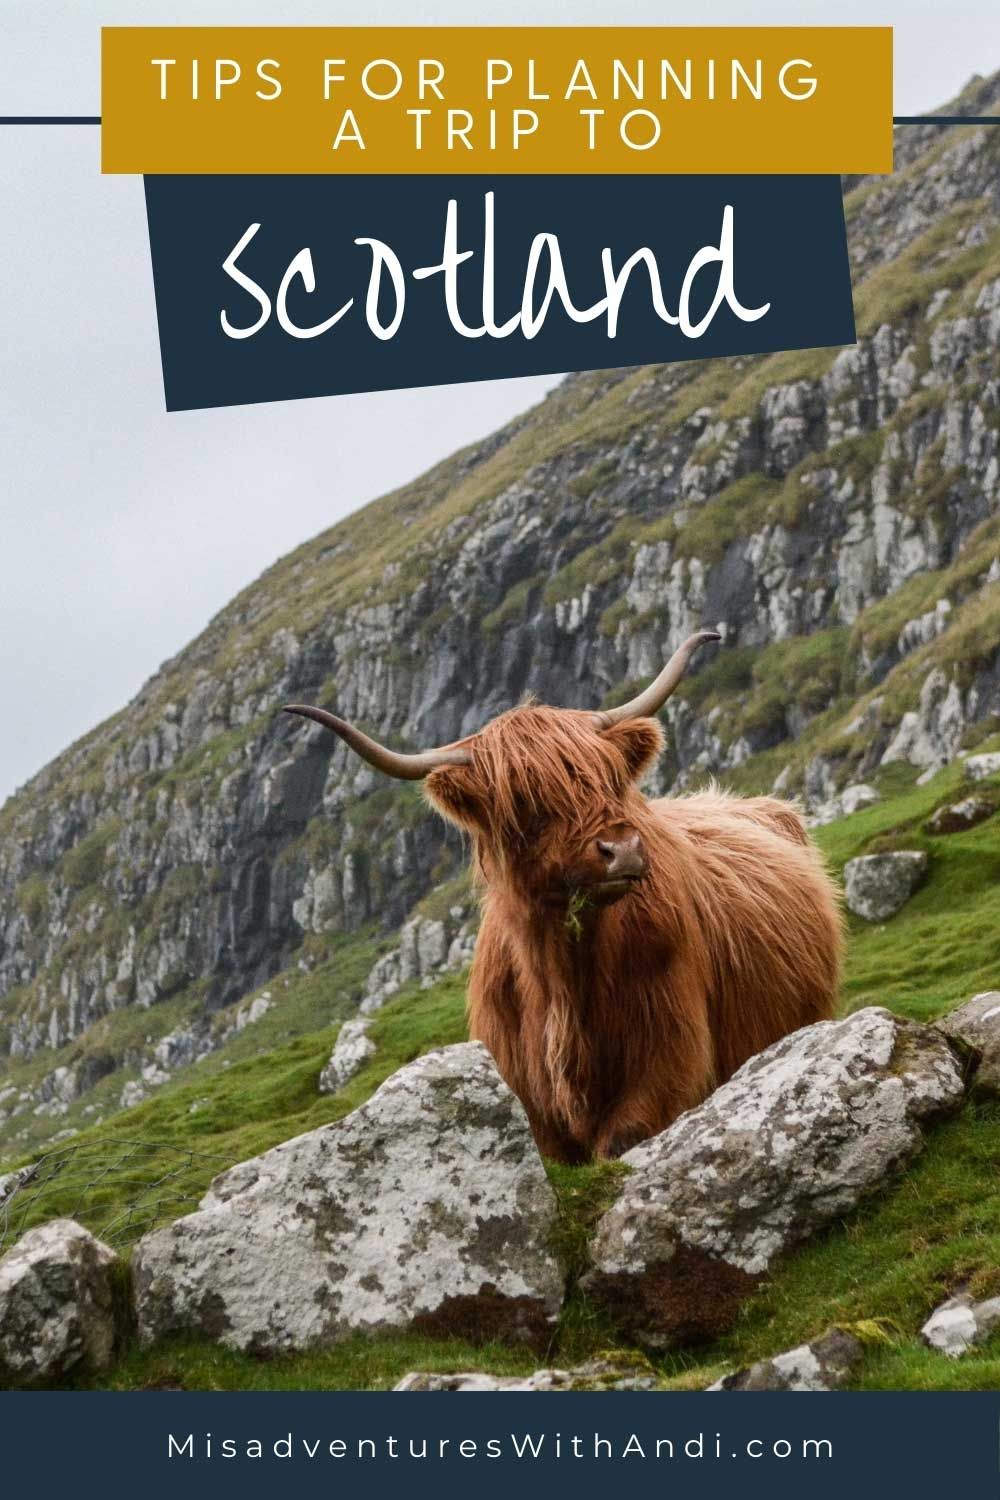 How To Plan An Unforgettable Trip To The Scottish Highlands